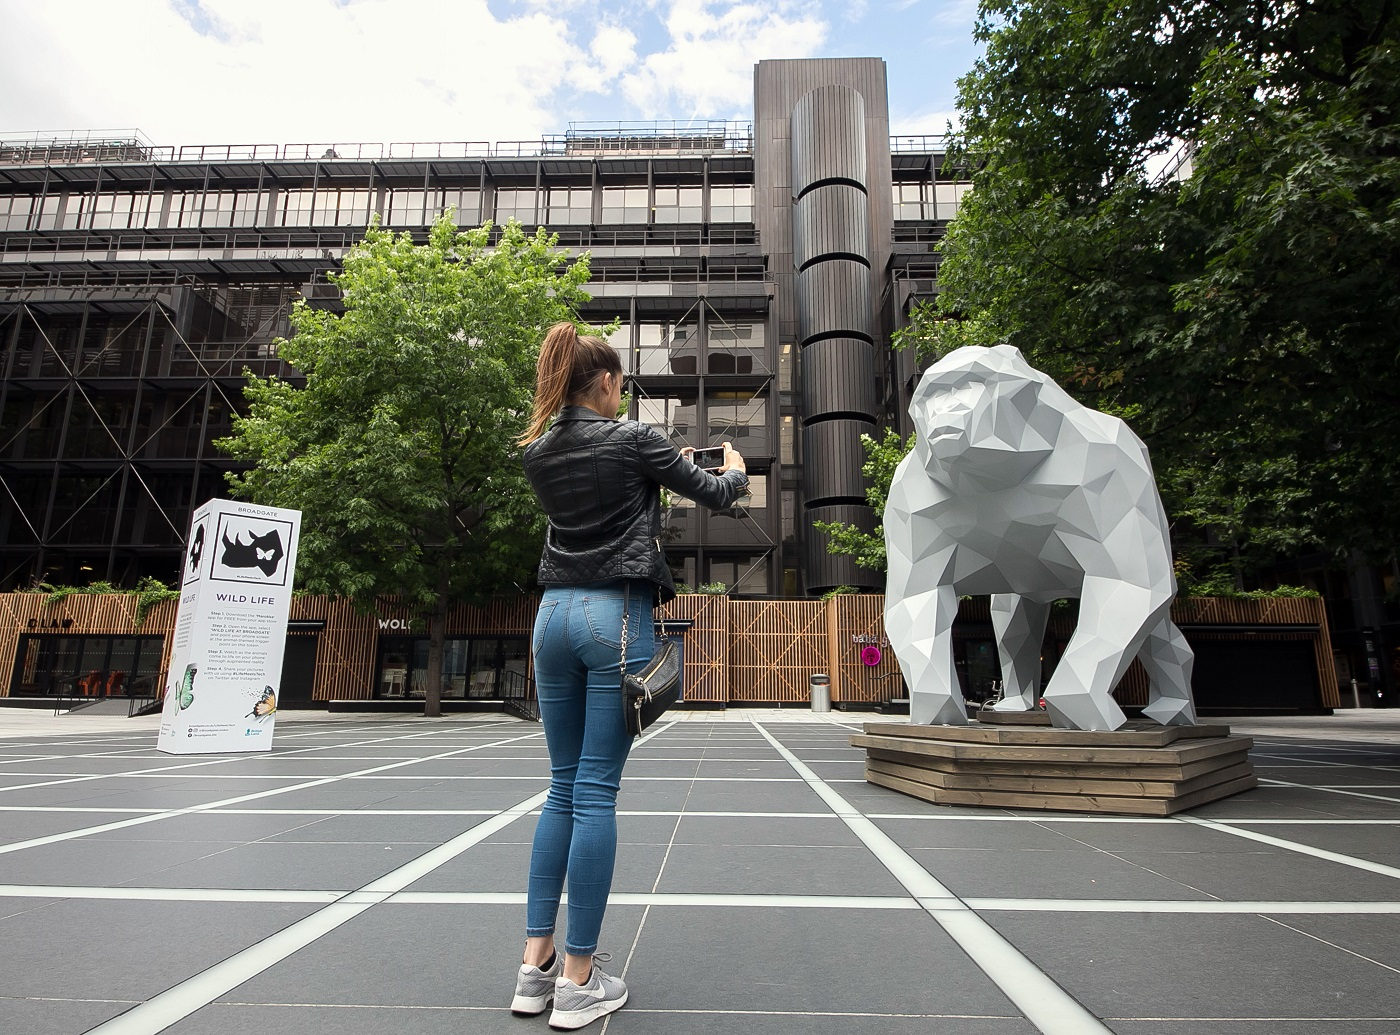 d1f17060 Augmented reality animals come to life in this futuristic London ...